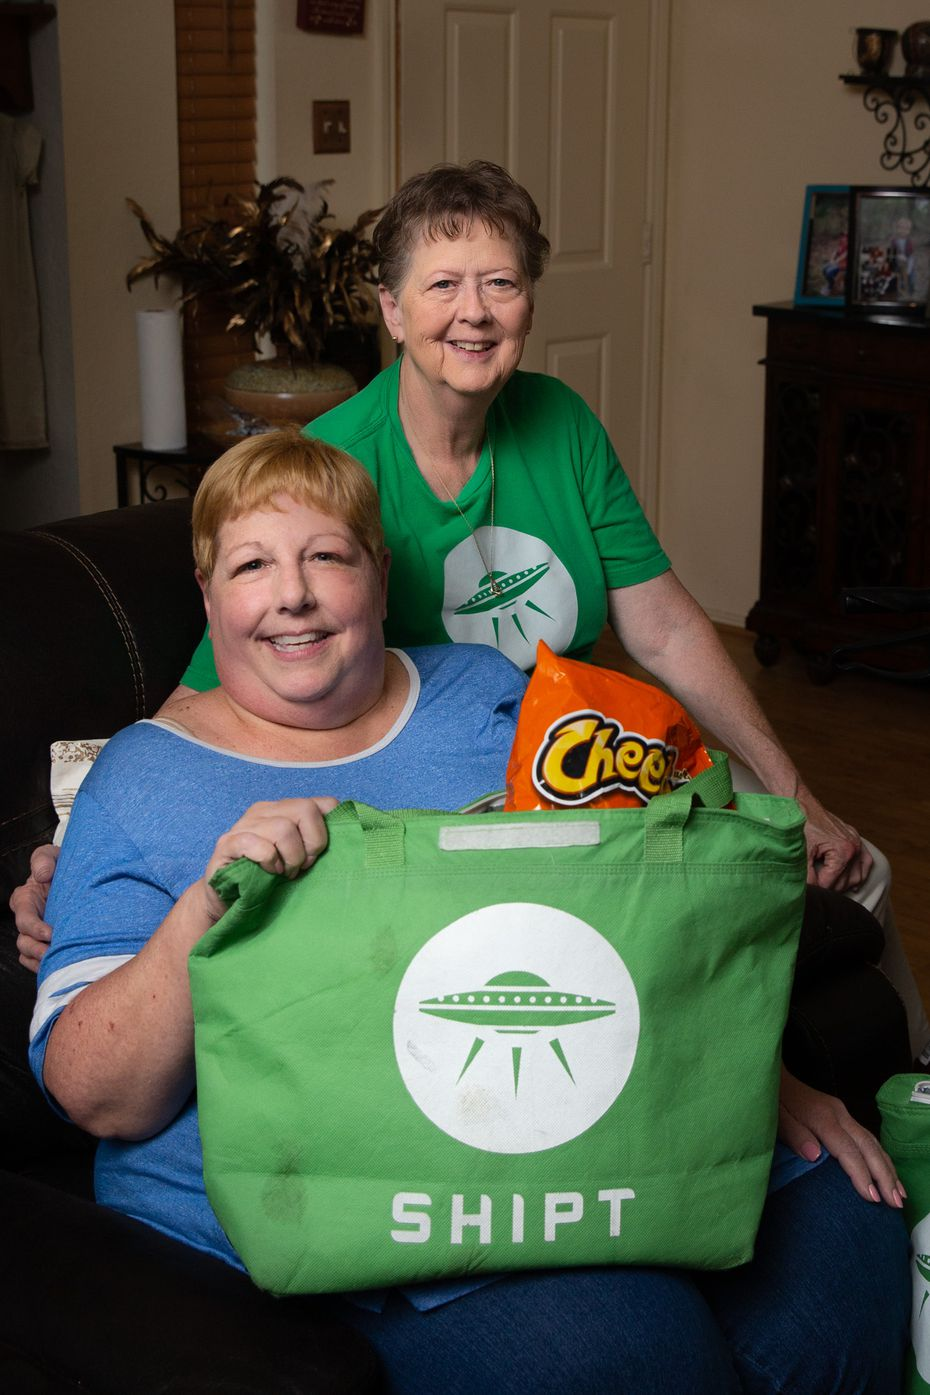 Sharon Fillner (left) and Deb Gardner, who works for the online grocery app Shipt, pose for a portrait in Fillner's home in Arlington, Texas, on July 24, 2019. Gardner has been shopping for Fillner for nearly 3 years because Fillner is homebound.